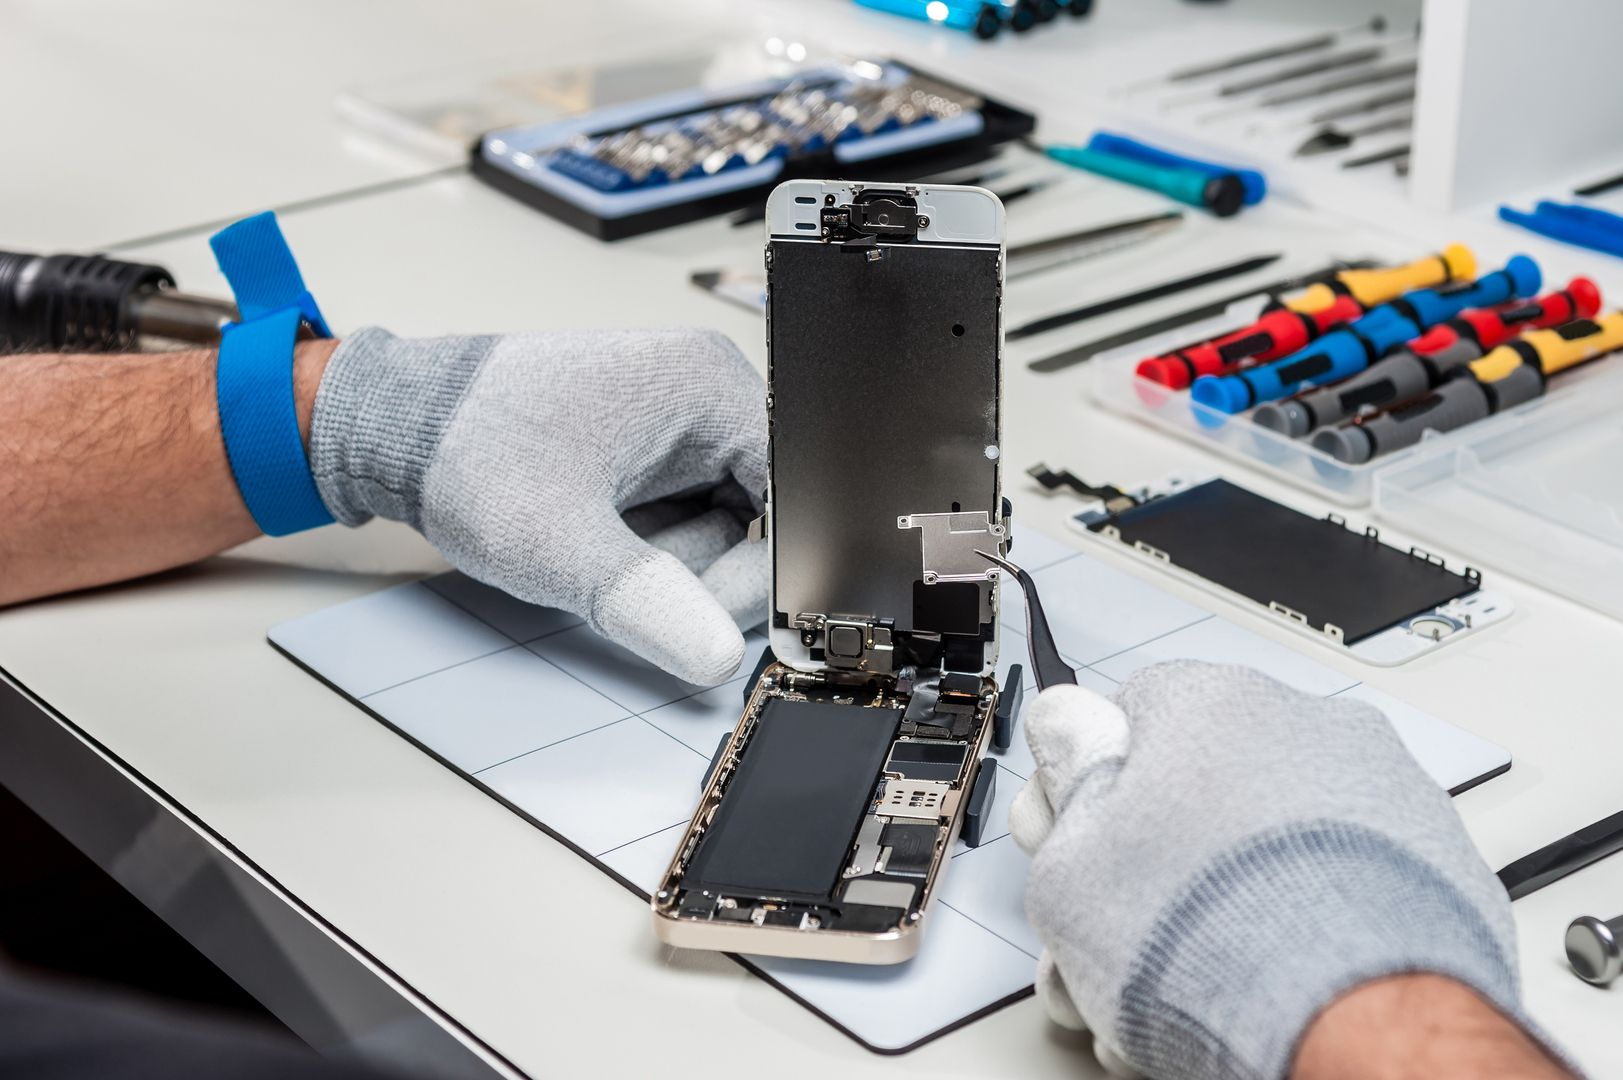 How To Choose An Iphone Repair Shop Iphone Repair Iphone Screen Repair Mobile Phone Repair